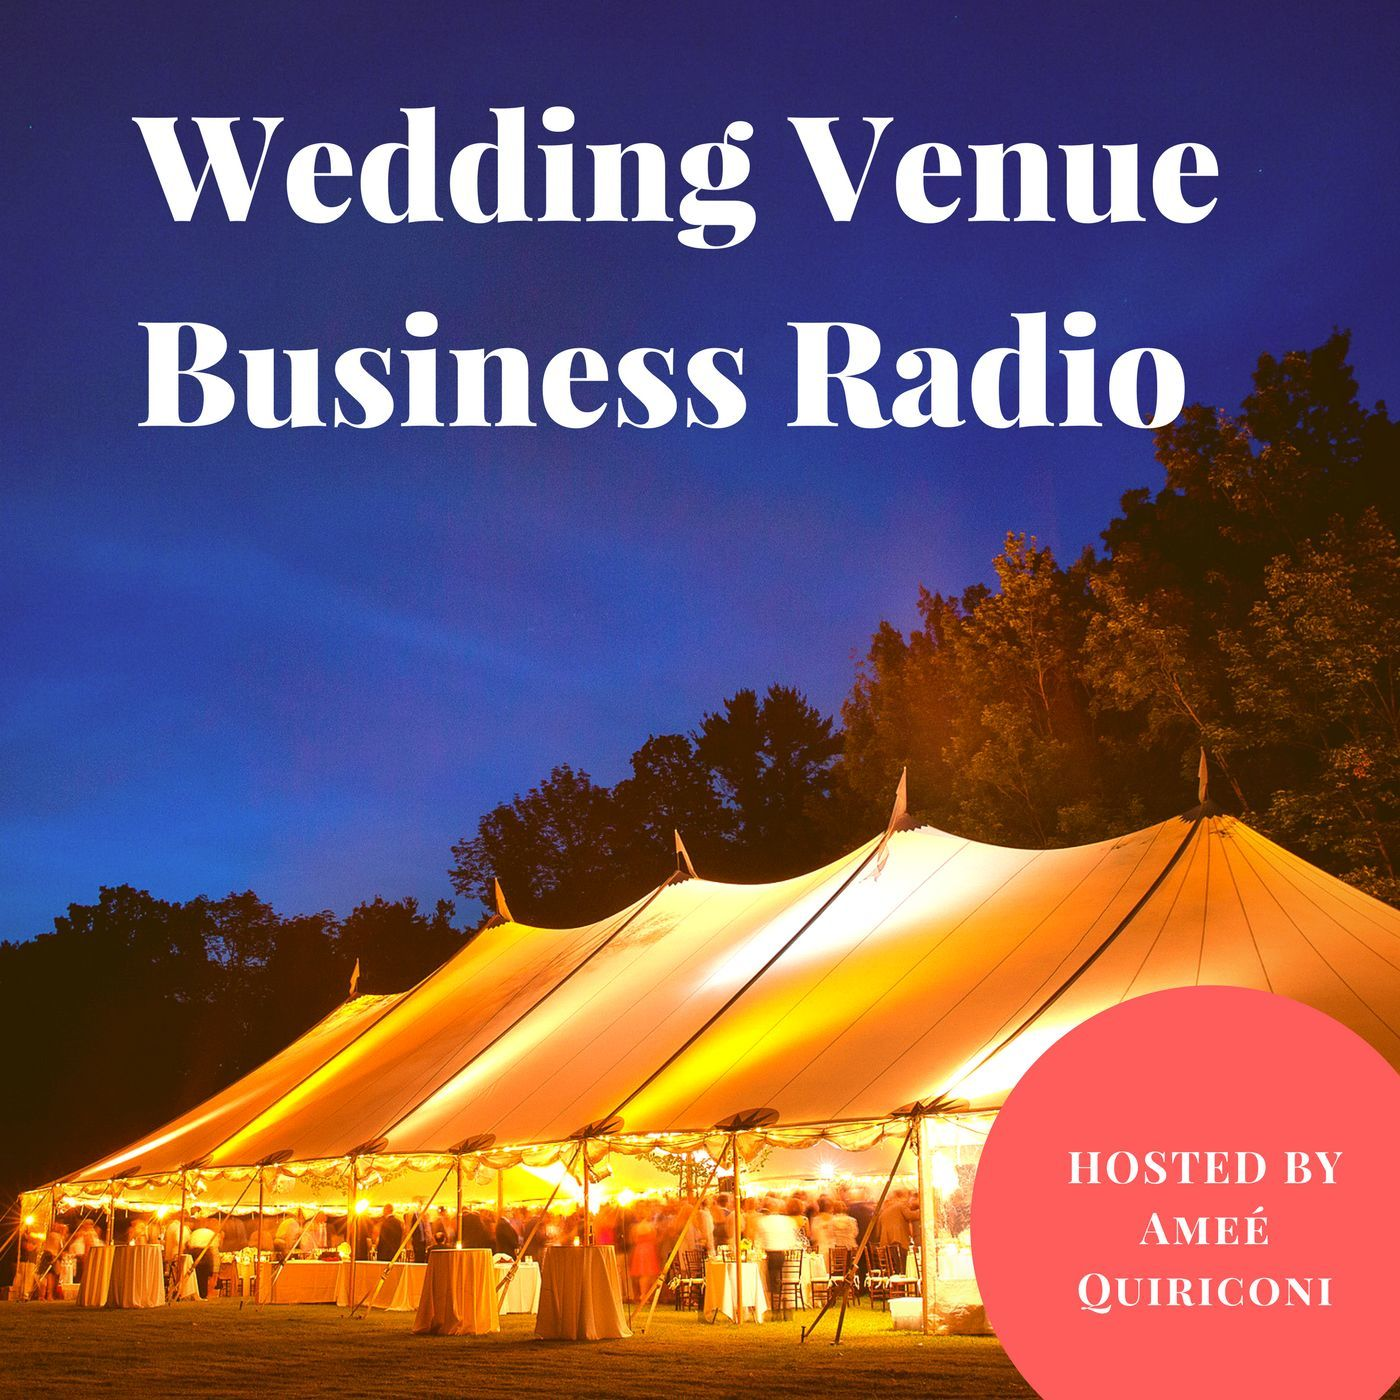 Tips for Balancing Home with Venue